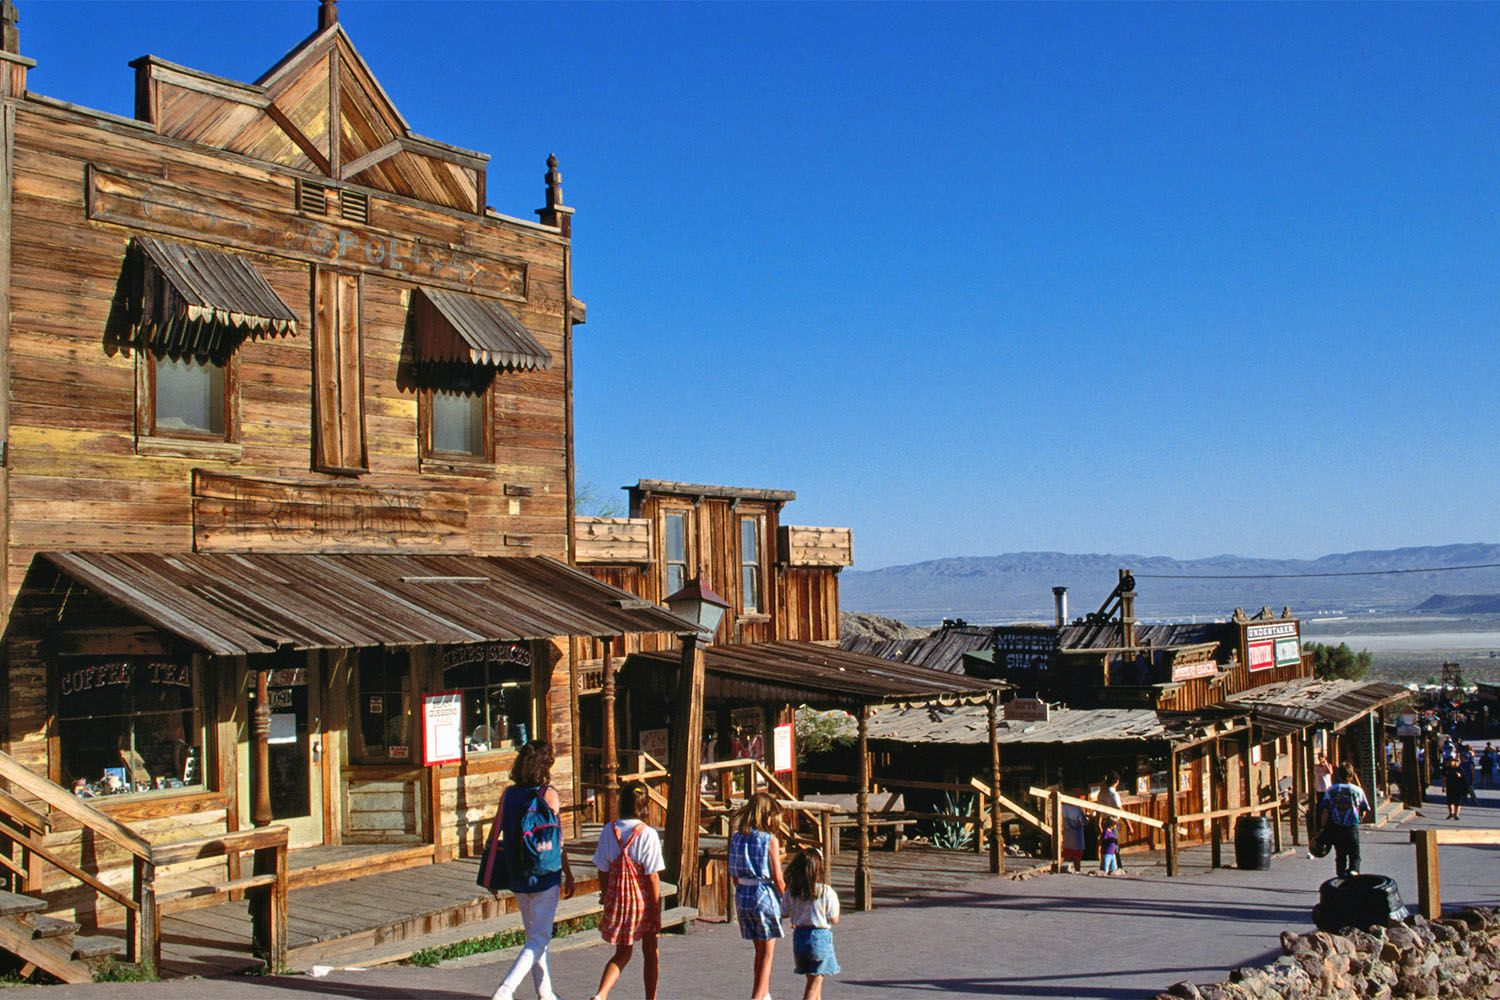 Visiting Calico Ghost Town